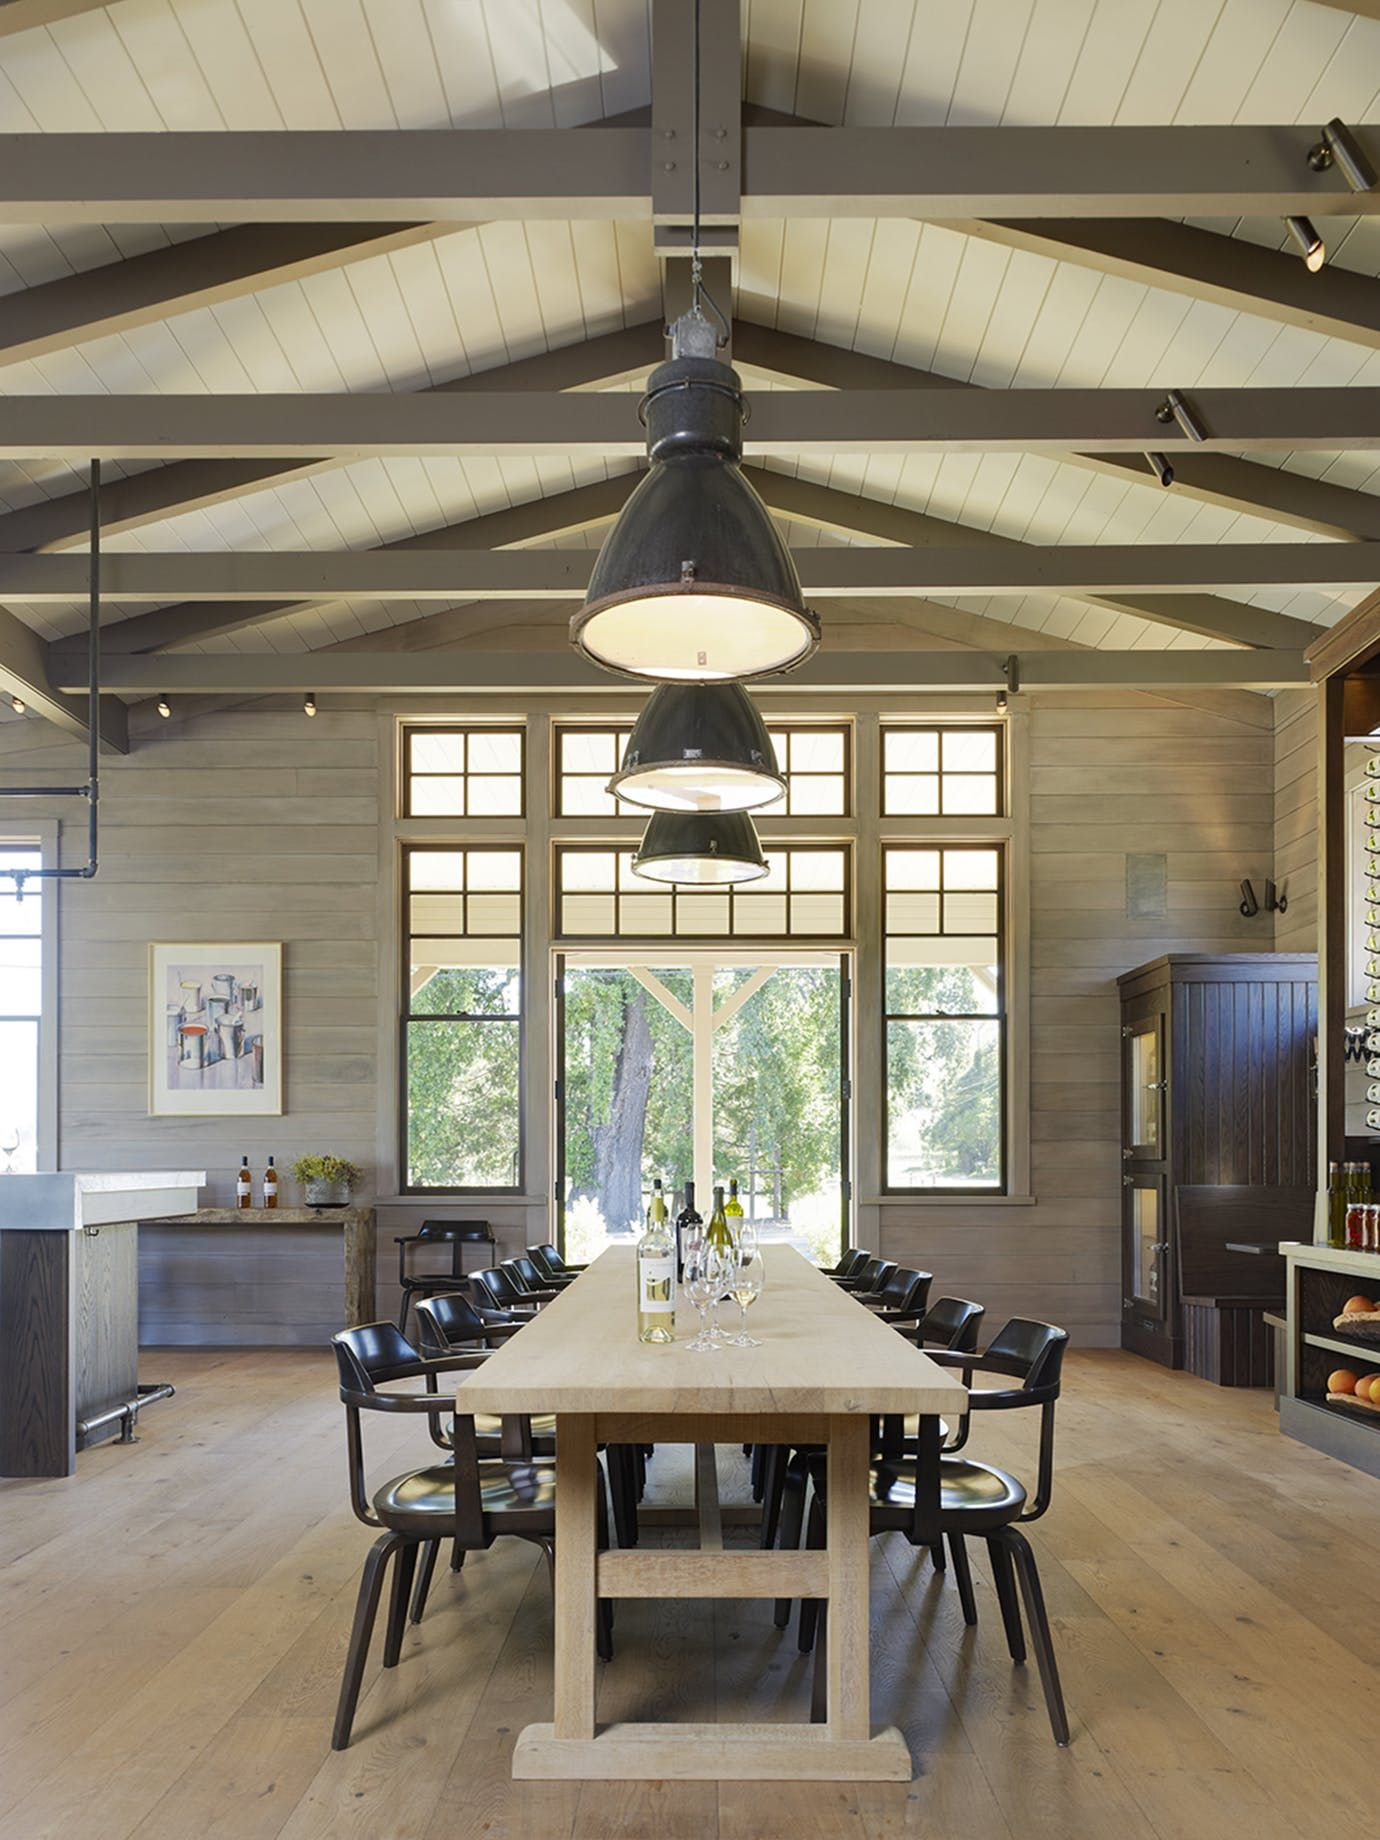 Medlock Ames Tasting Room Architectural Detail Architectural